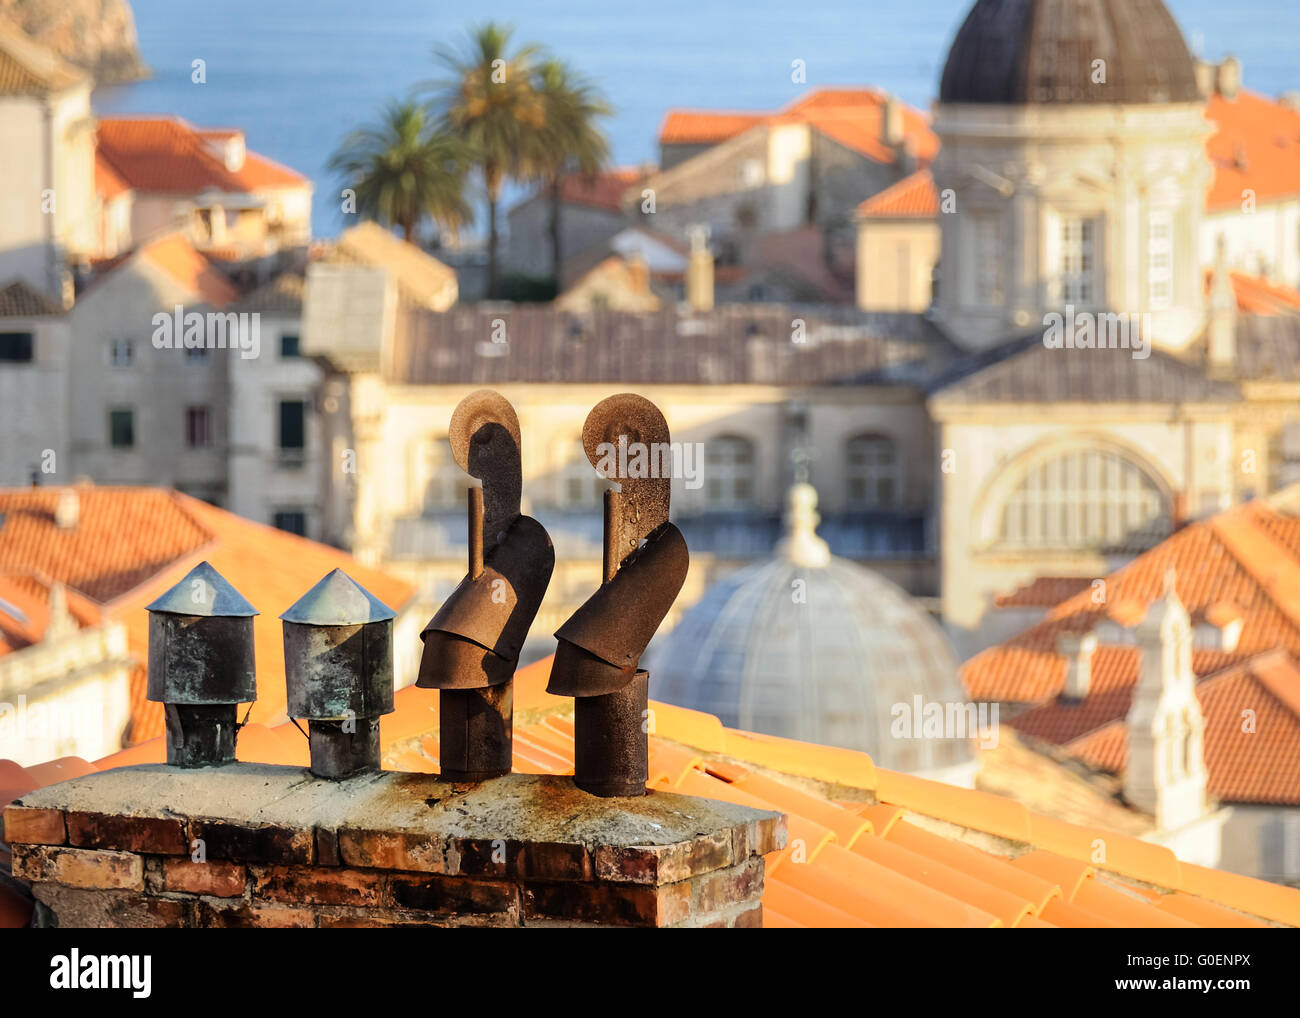 Chimney above the rooftops of Dubrovnik - Stock Image